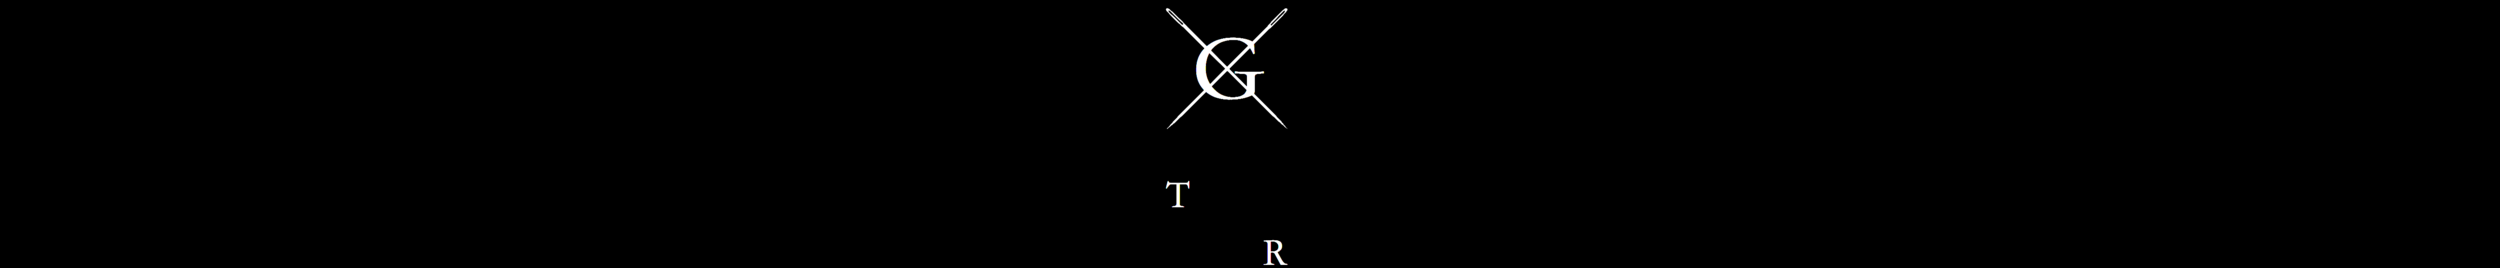 BOTTOM LOGO GTR copy.png